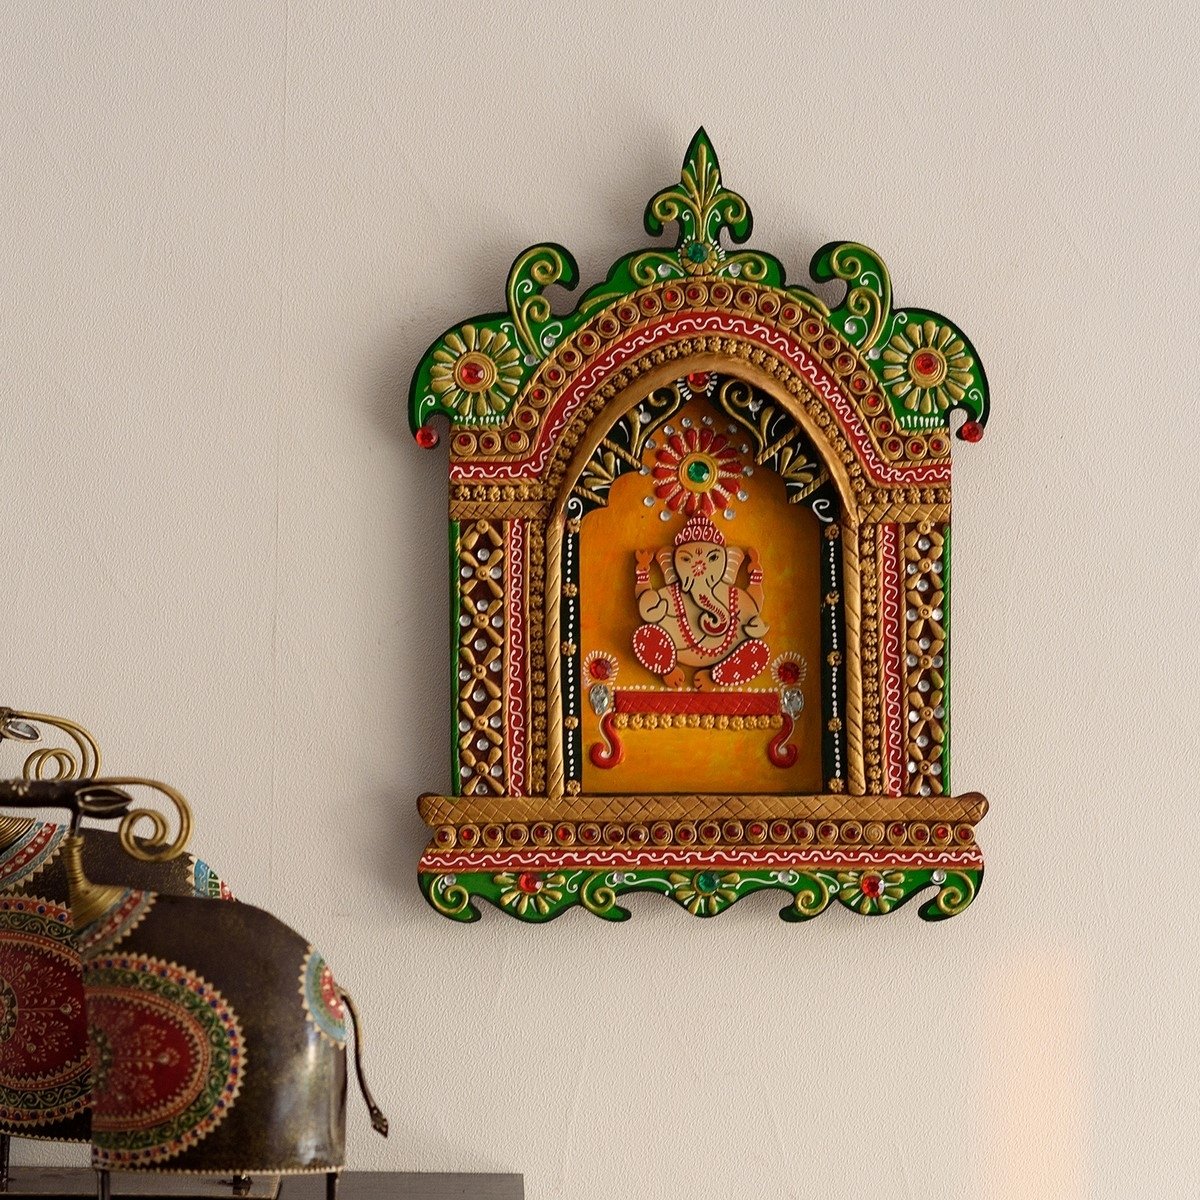 Lord Ganesha Papier-Mache Wooden Wall Hanging Indian Home Decor